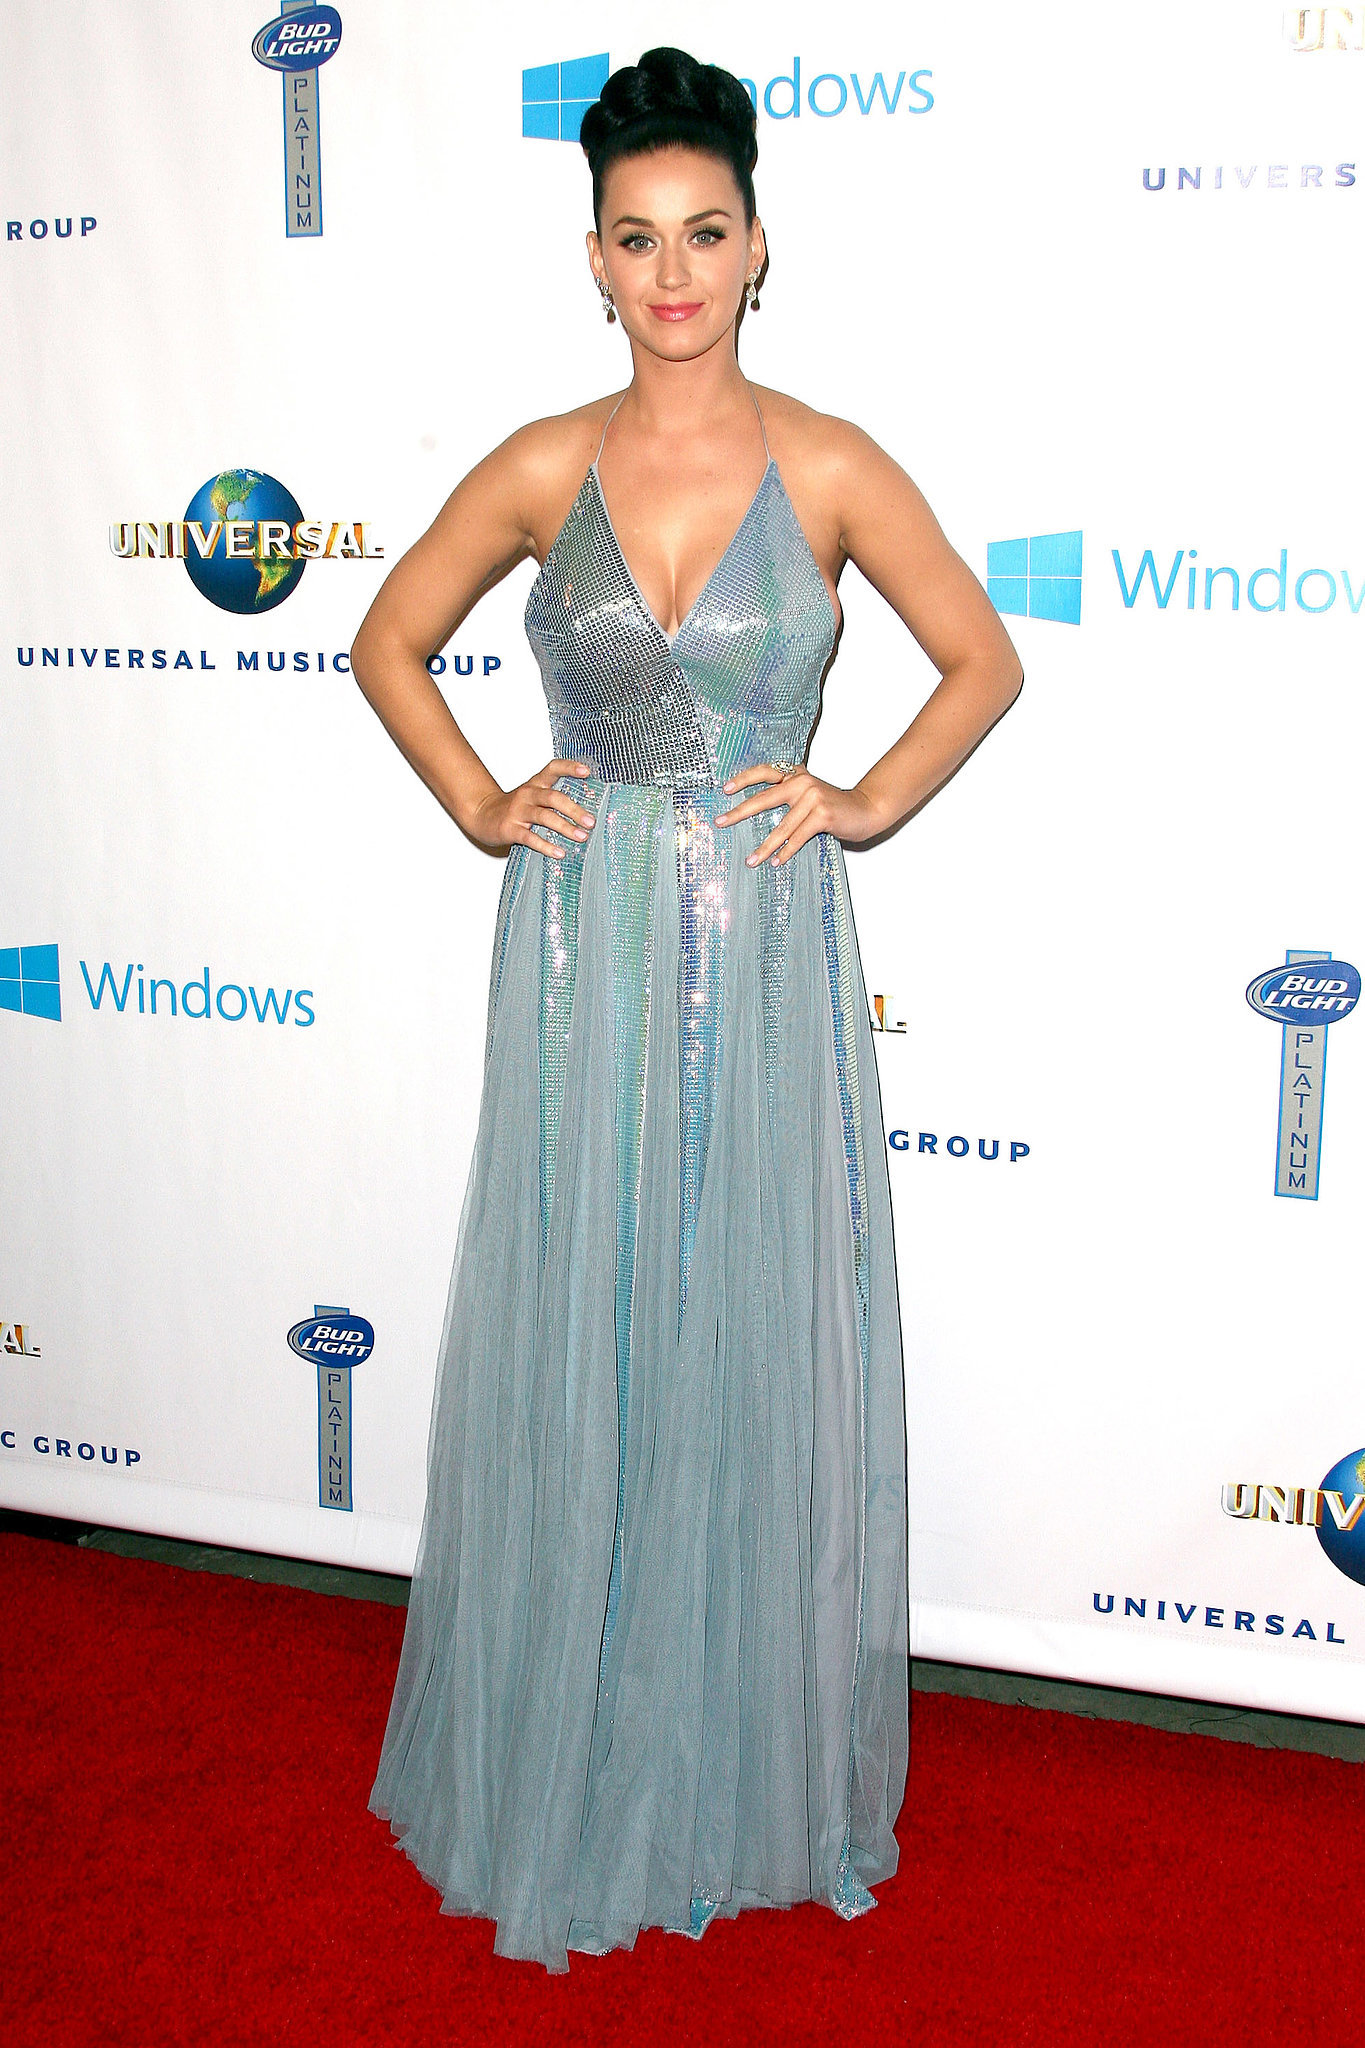 Katy Perry in Blue Dress | Stars Get Sexy For the Grammys ...